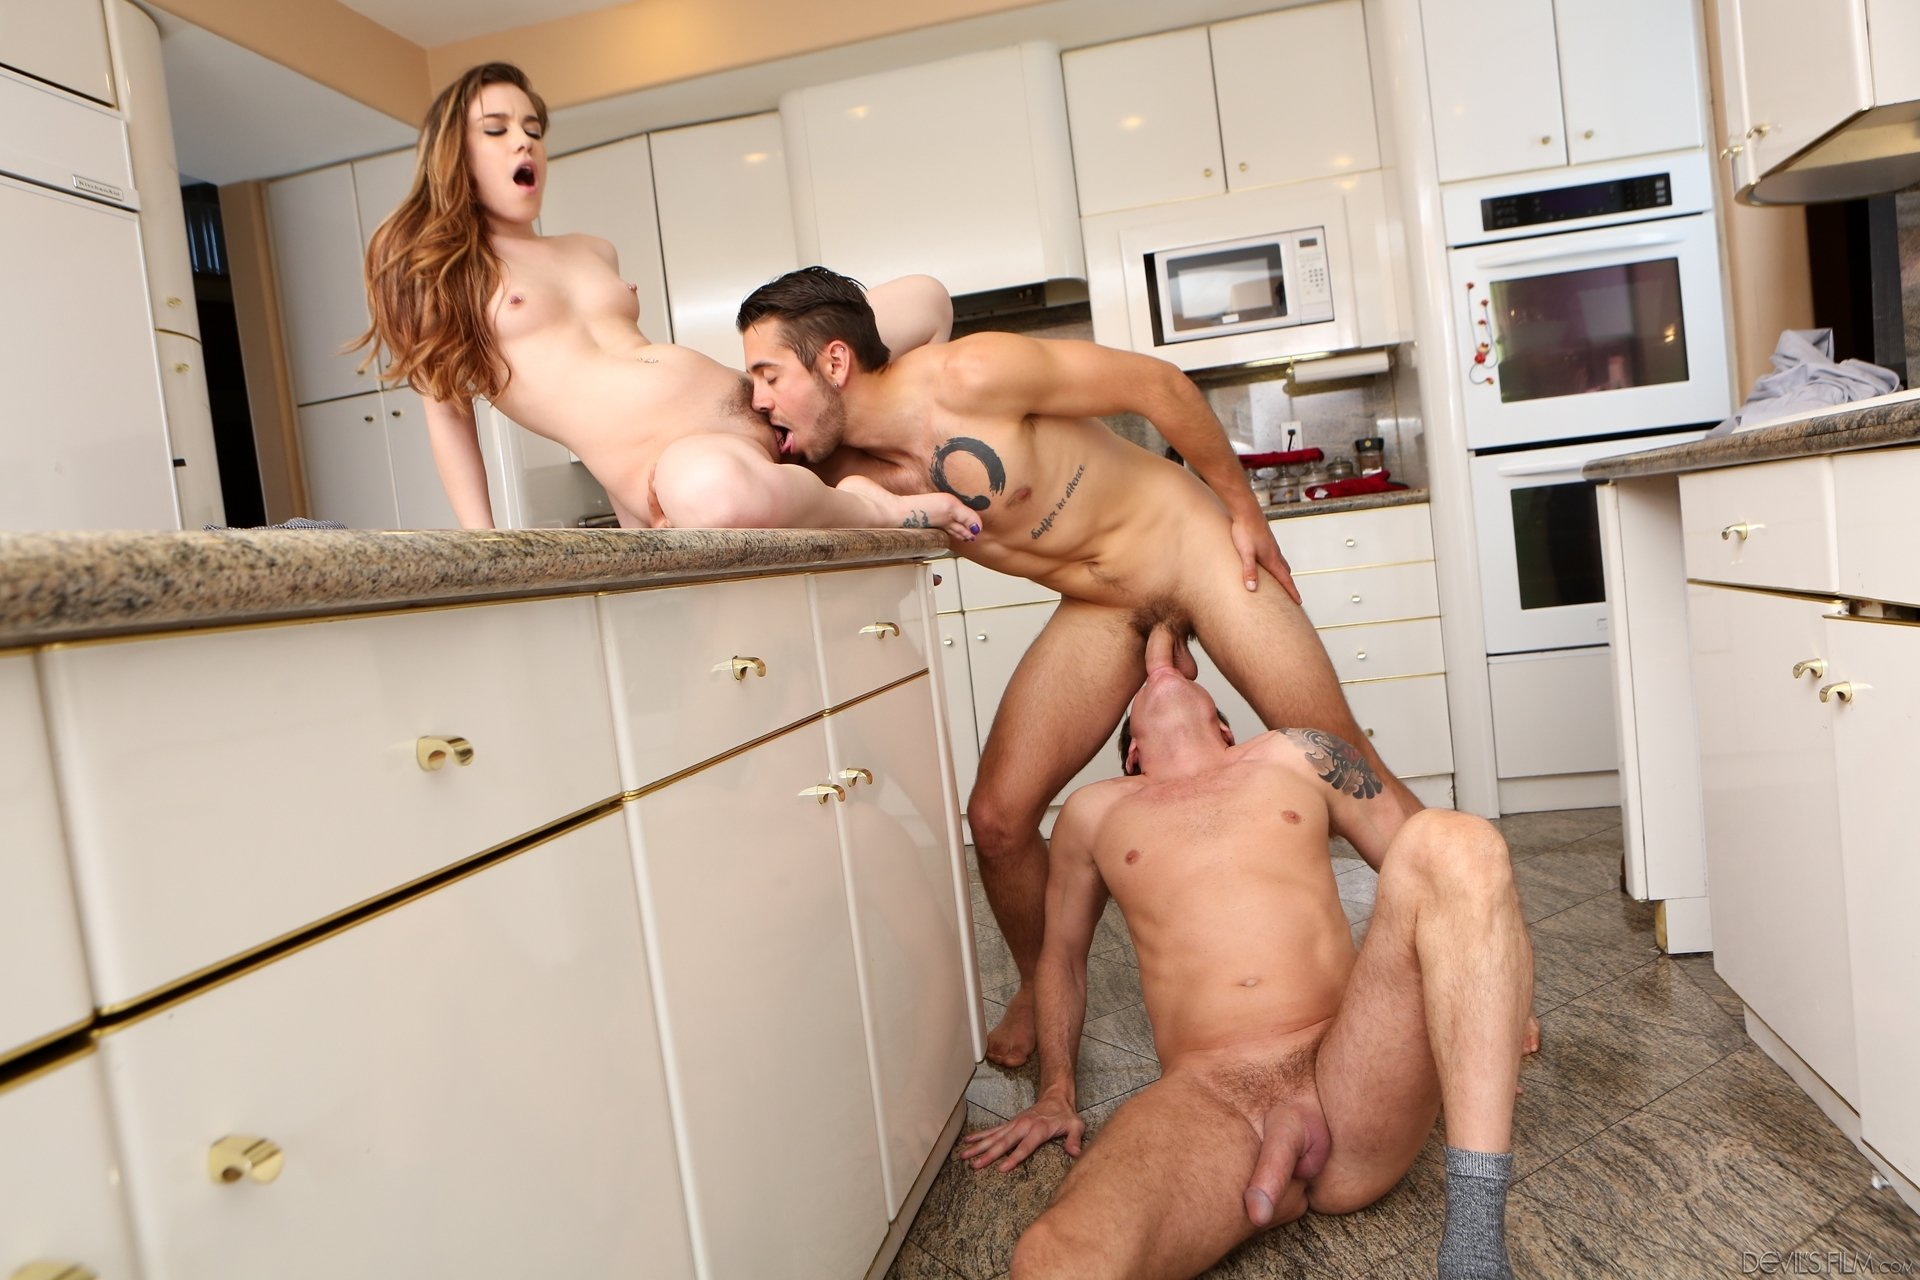 Orgy old and young Amateur angels 18 rapidshare